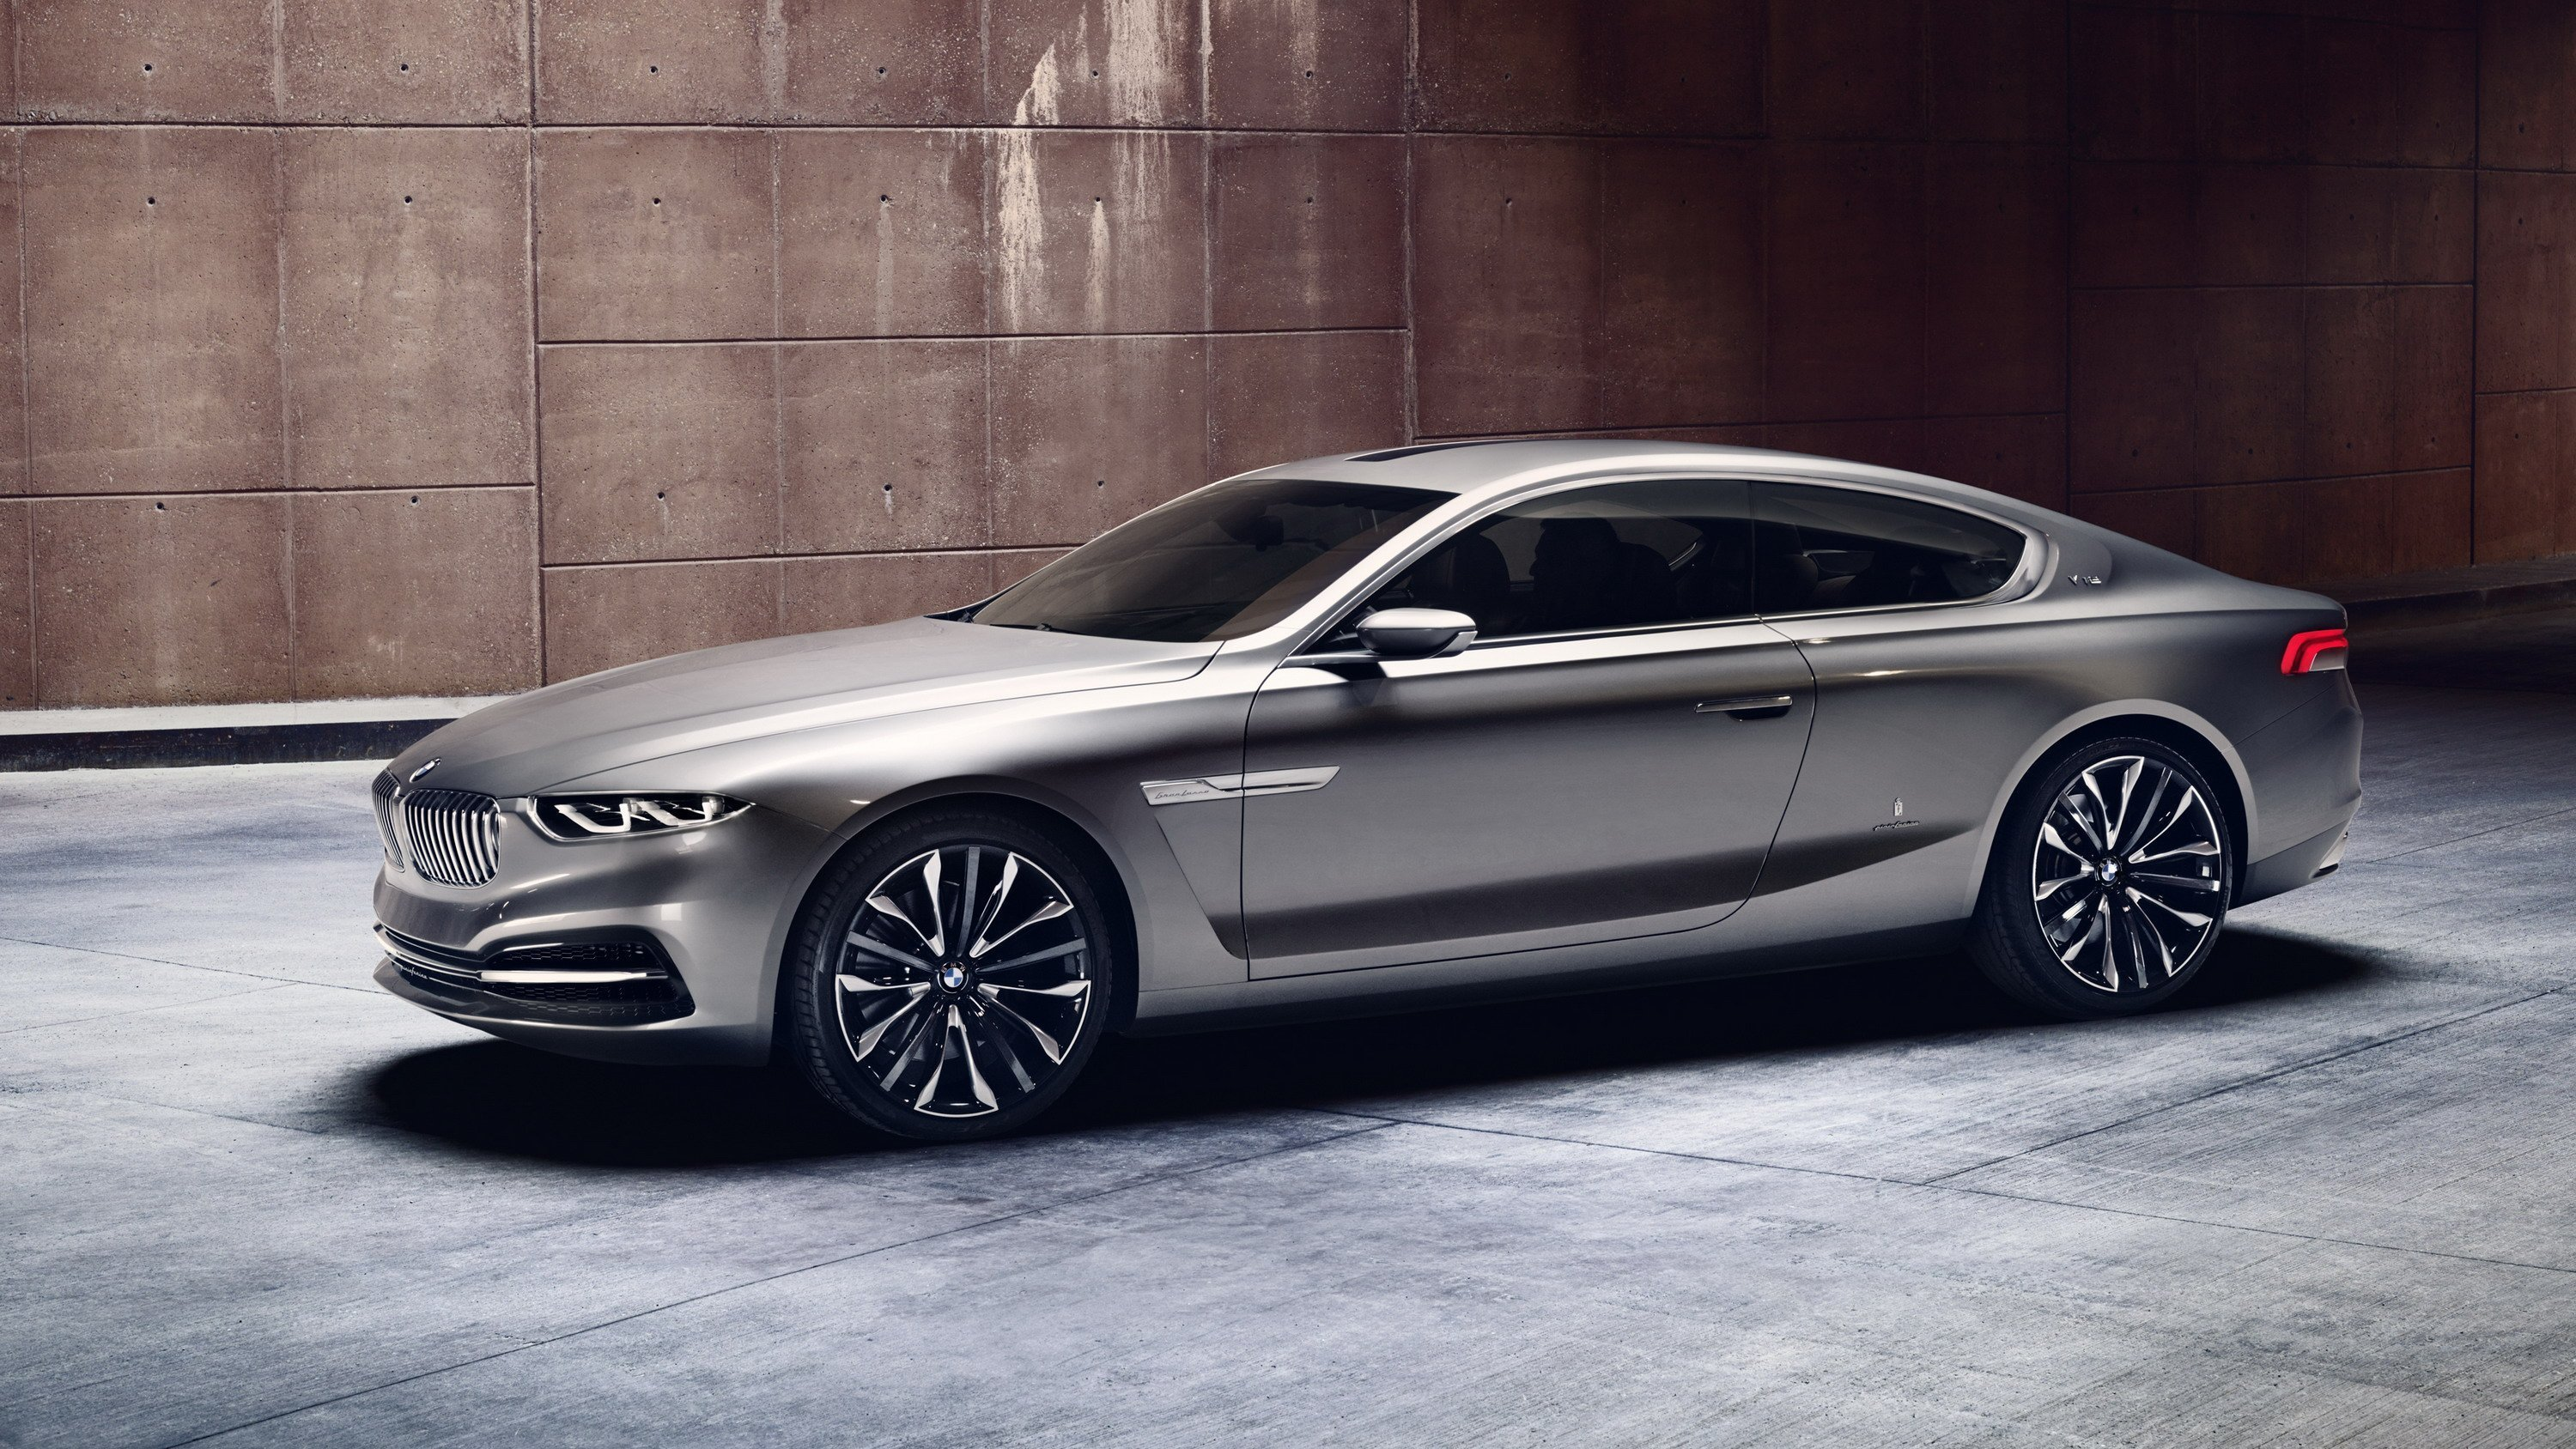 Latest Bmw To Launch 7 Series Coupe In 2019 Report Top Speed Free Download